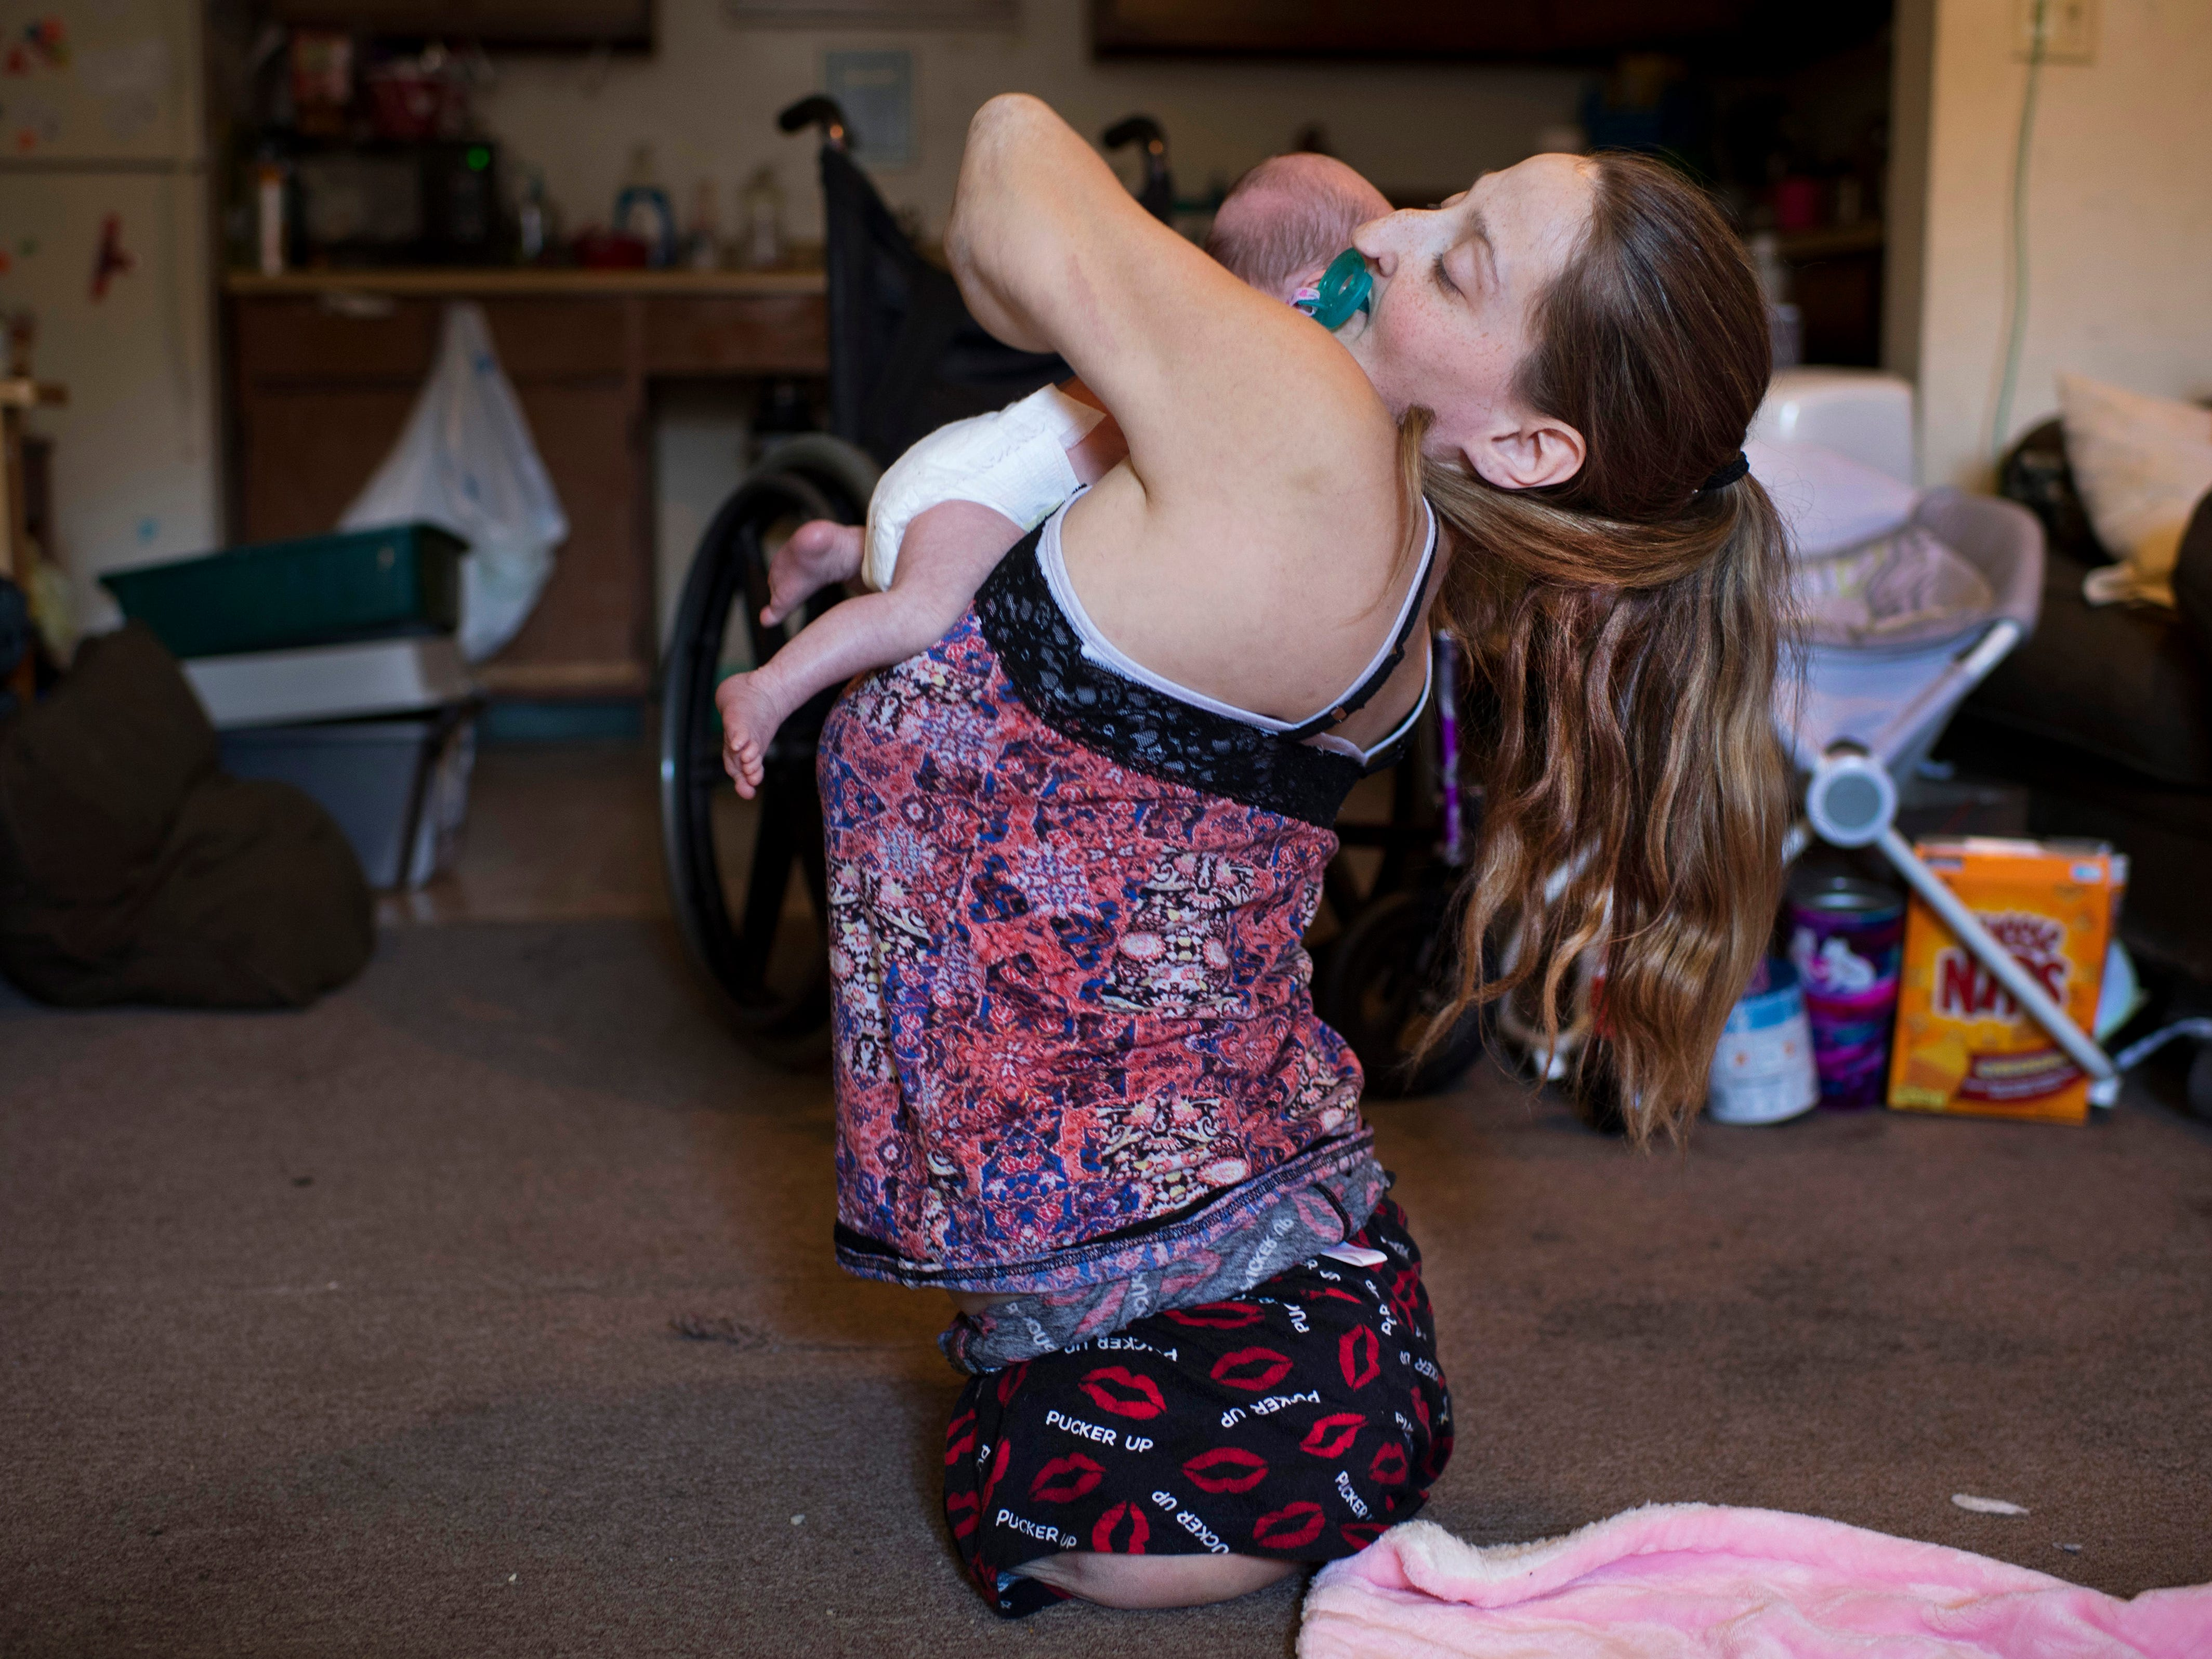 """Ashley gets a lift from her mom, Amanda Smith, after a diaper change Wednesday, Nov. 7, 2018. """"It is a little hard, but you've just got to figure stuff out and take it day by day to learn,"""" Amanda said. """"It's nothing you can learn overnight."""""""